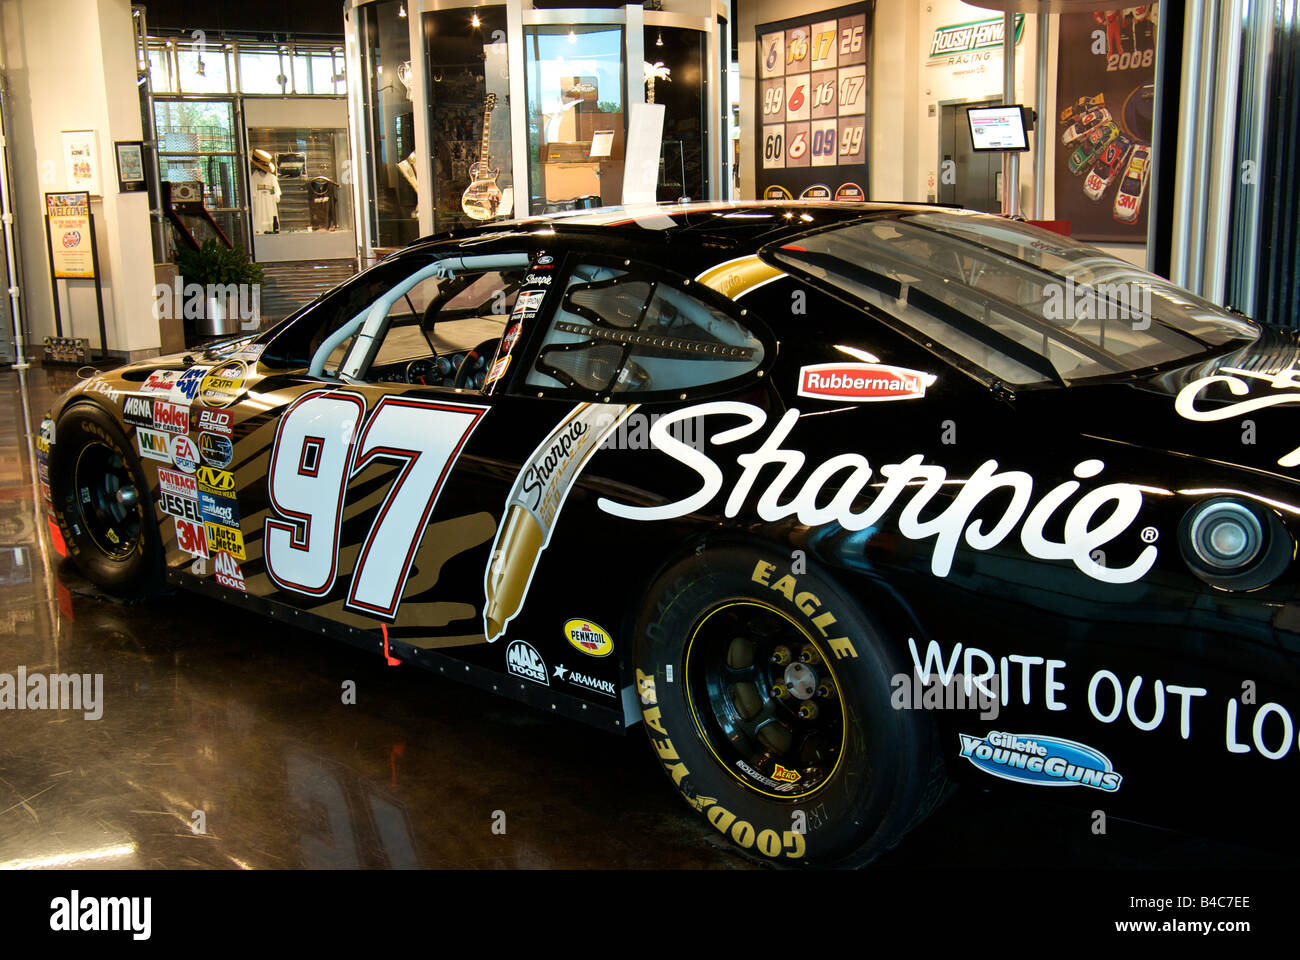 A Ford Taurus NASCAR Race Car Covered In Sponsor Decals At The - Race car decals